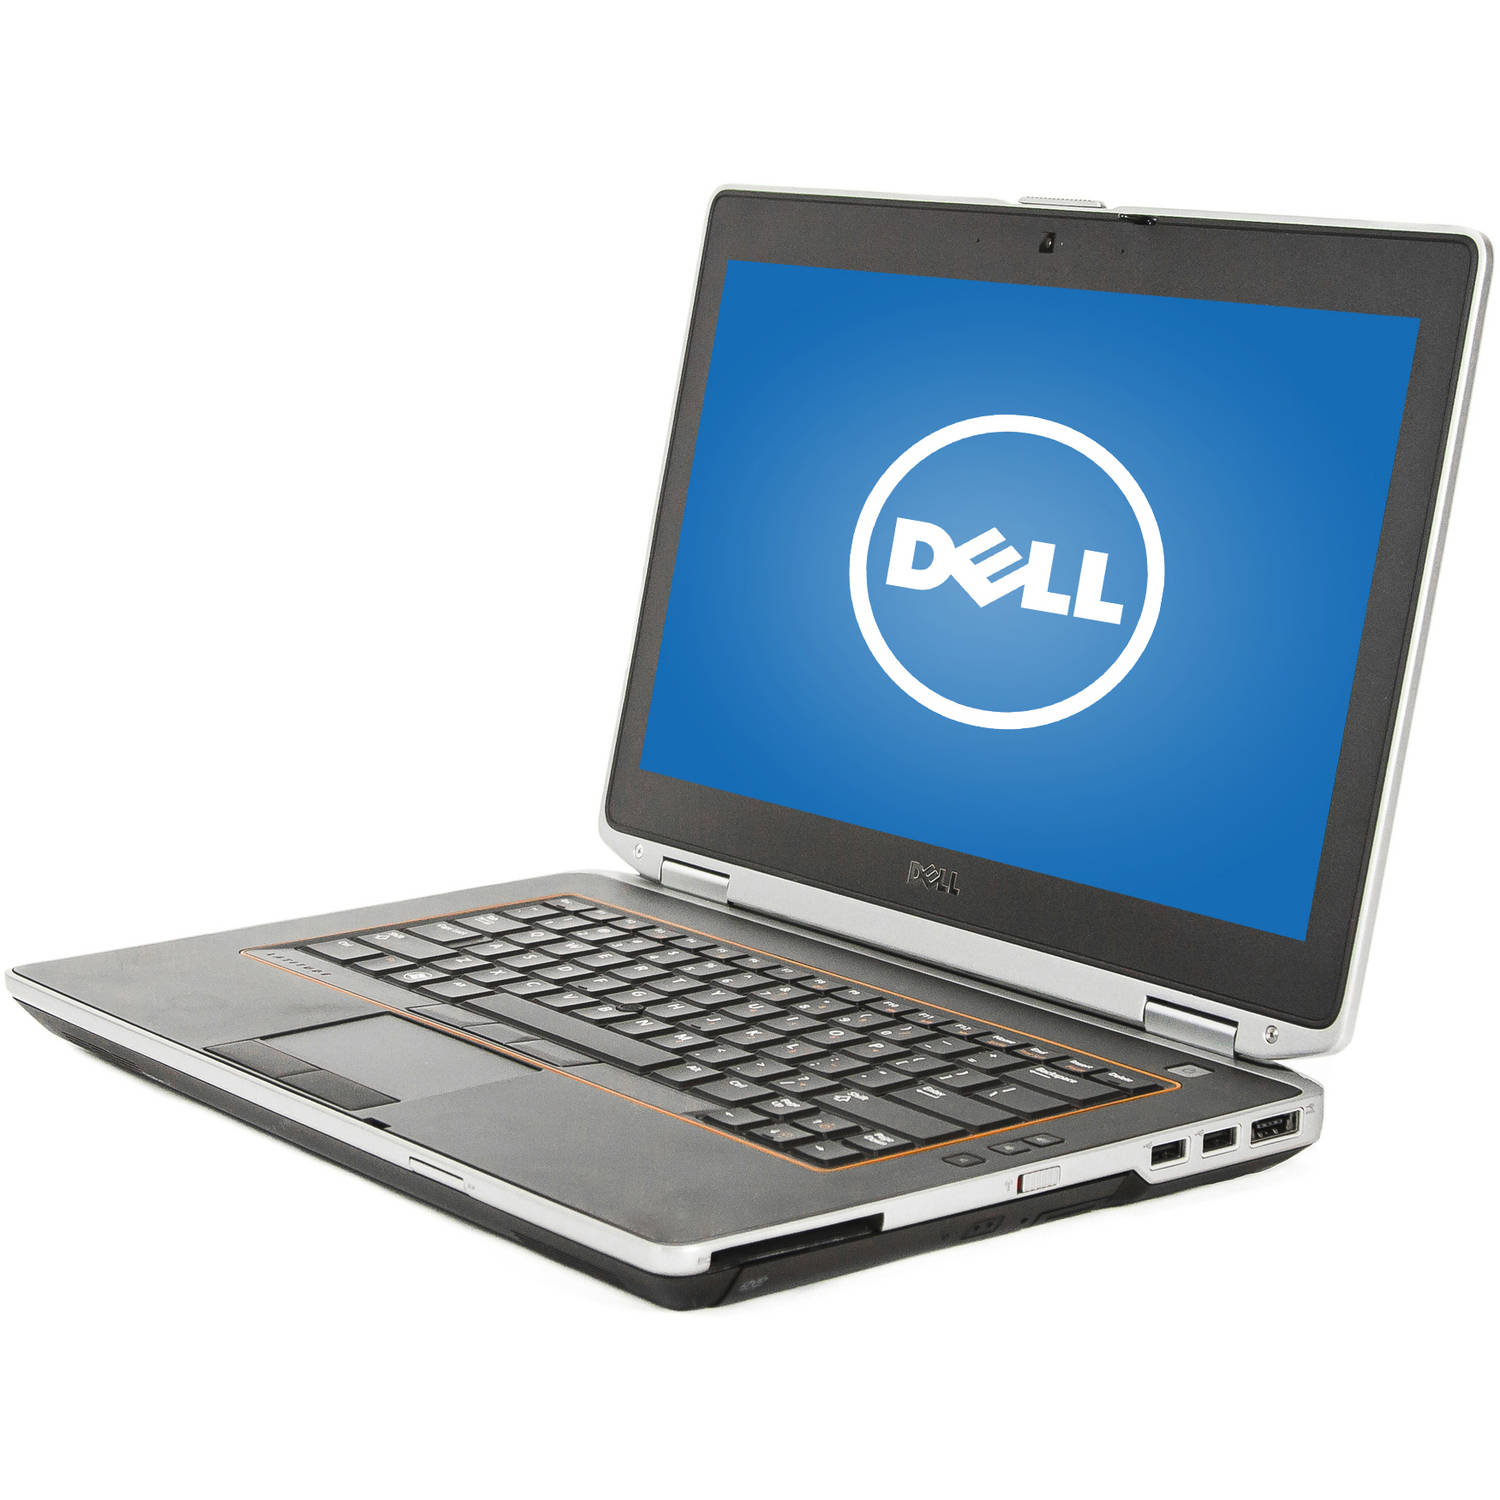 "Refurbished Dell Silver 14"" E6420 Laptop PC with Intel Core i5 Processor, 4GB Memory, 320GB Hard Drive and Windows 7 Professional"